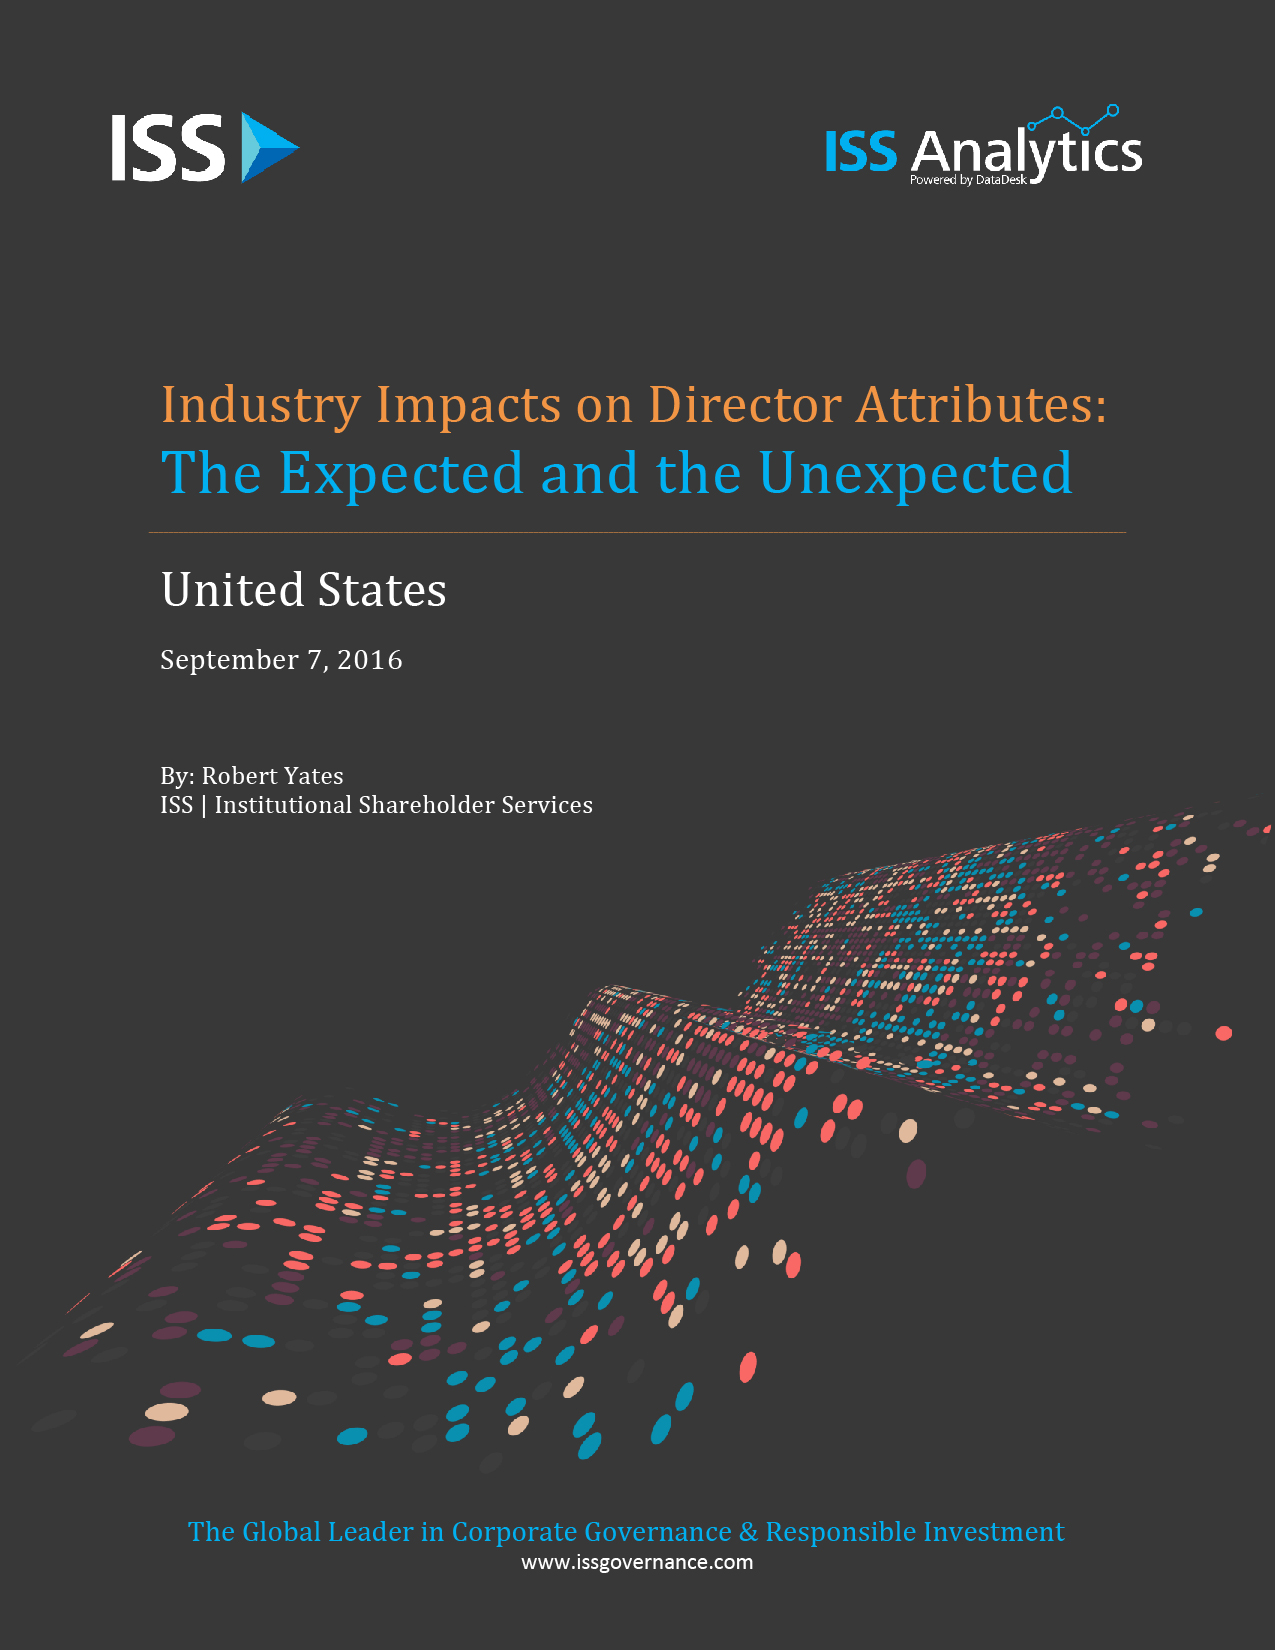 Industry Impacts on Director Attributes: The Expected and the Unexpected